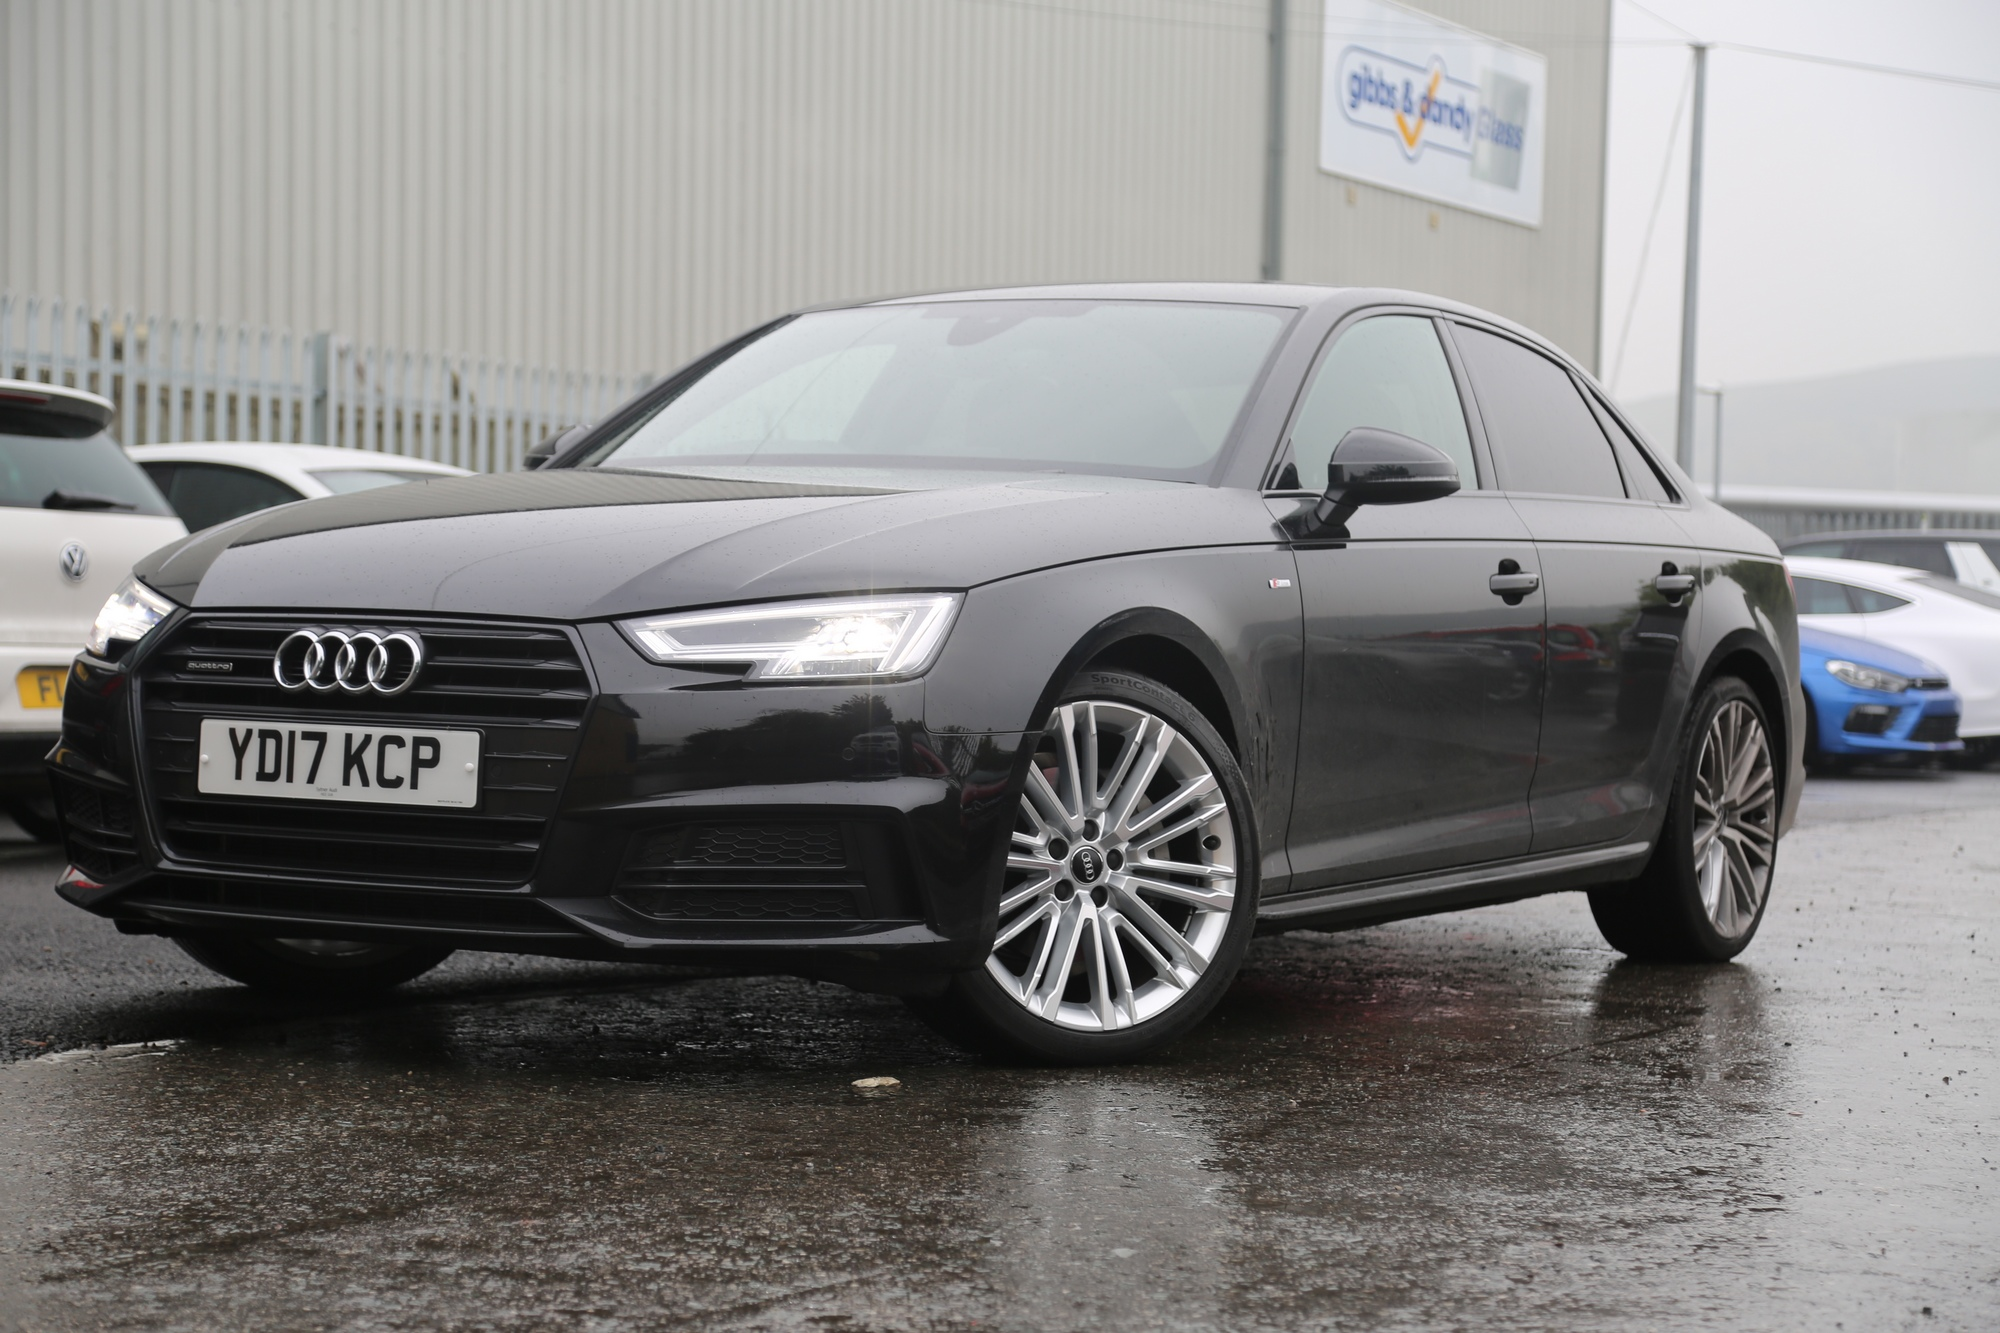 Audi A4 Diamond Cut Refurb